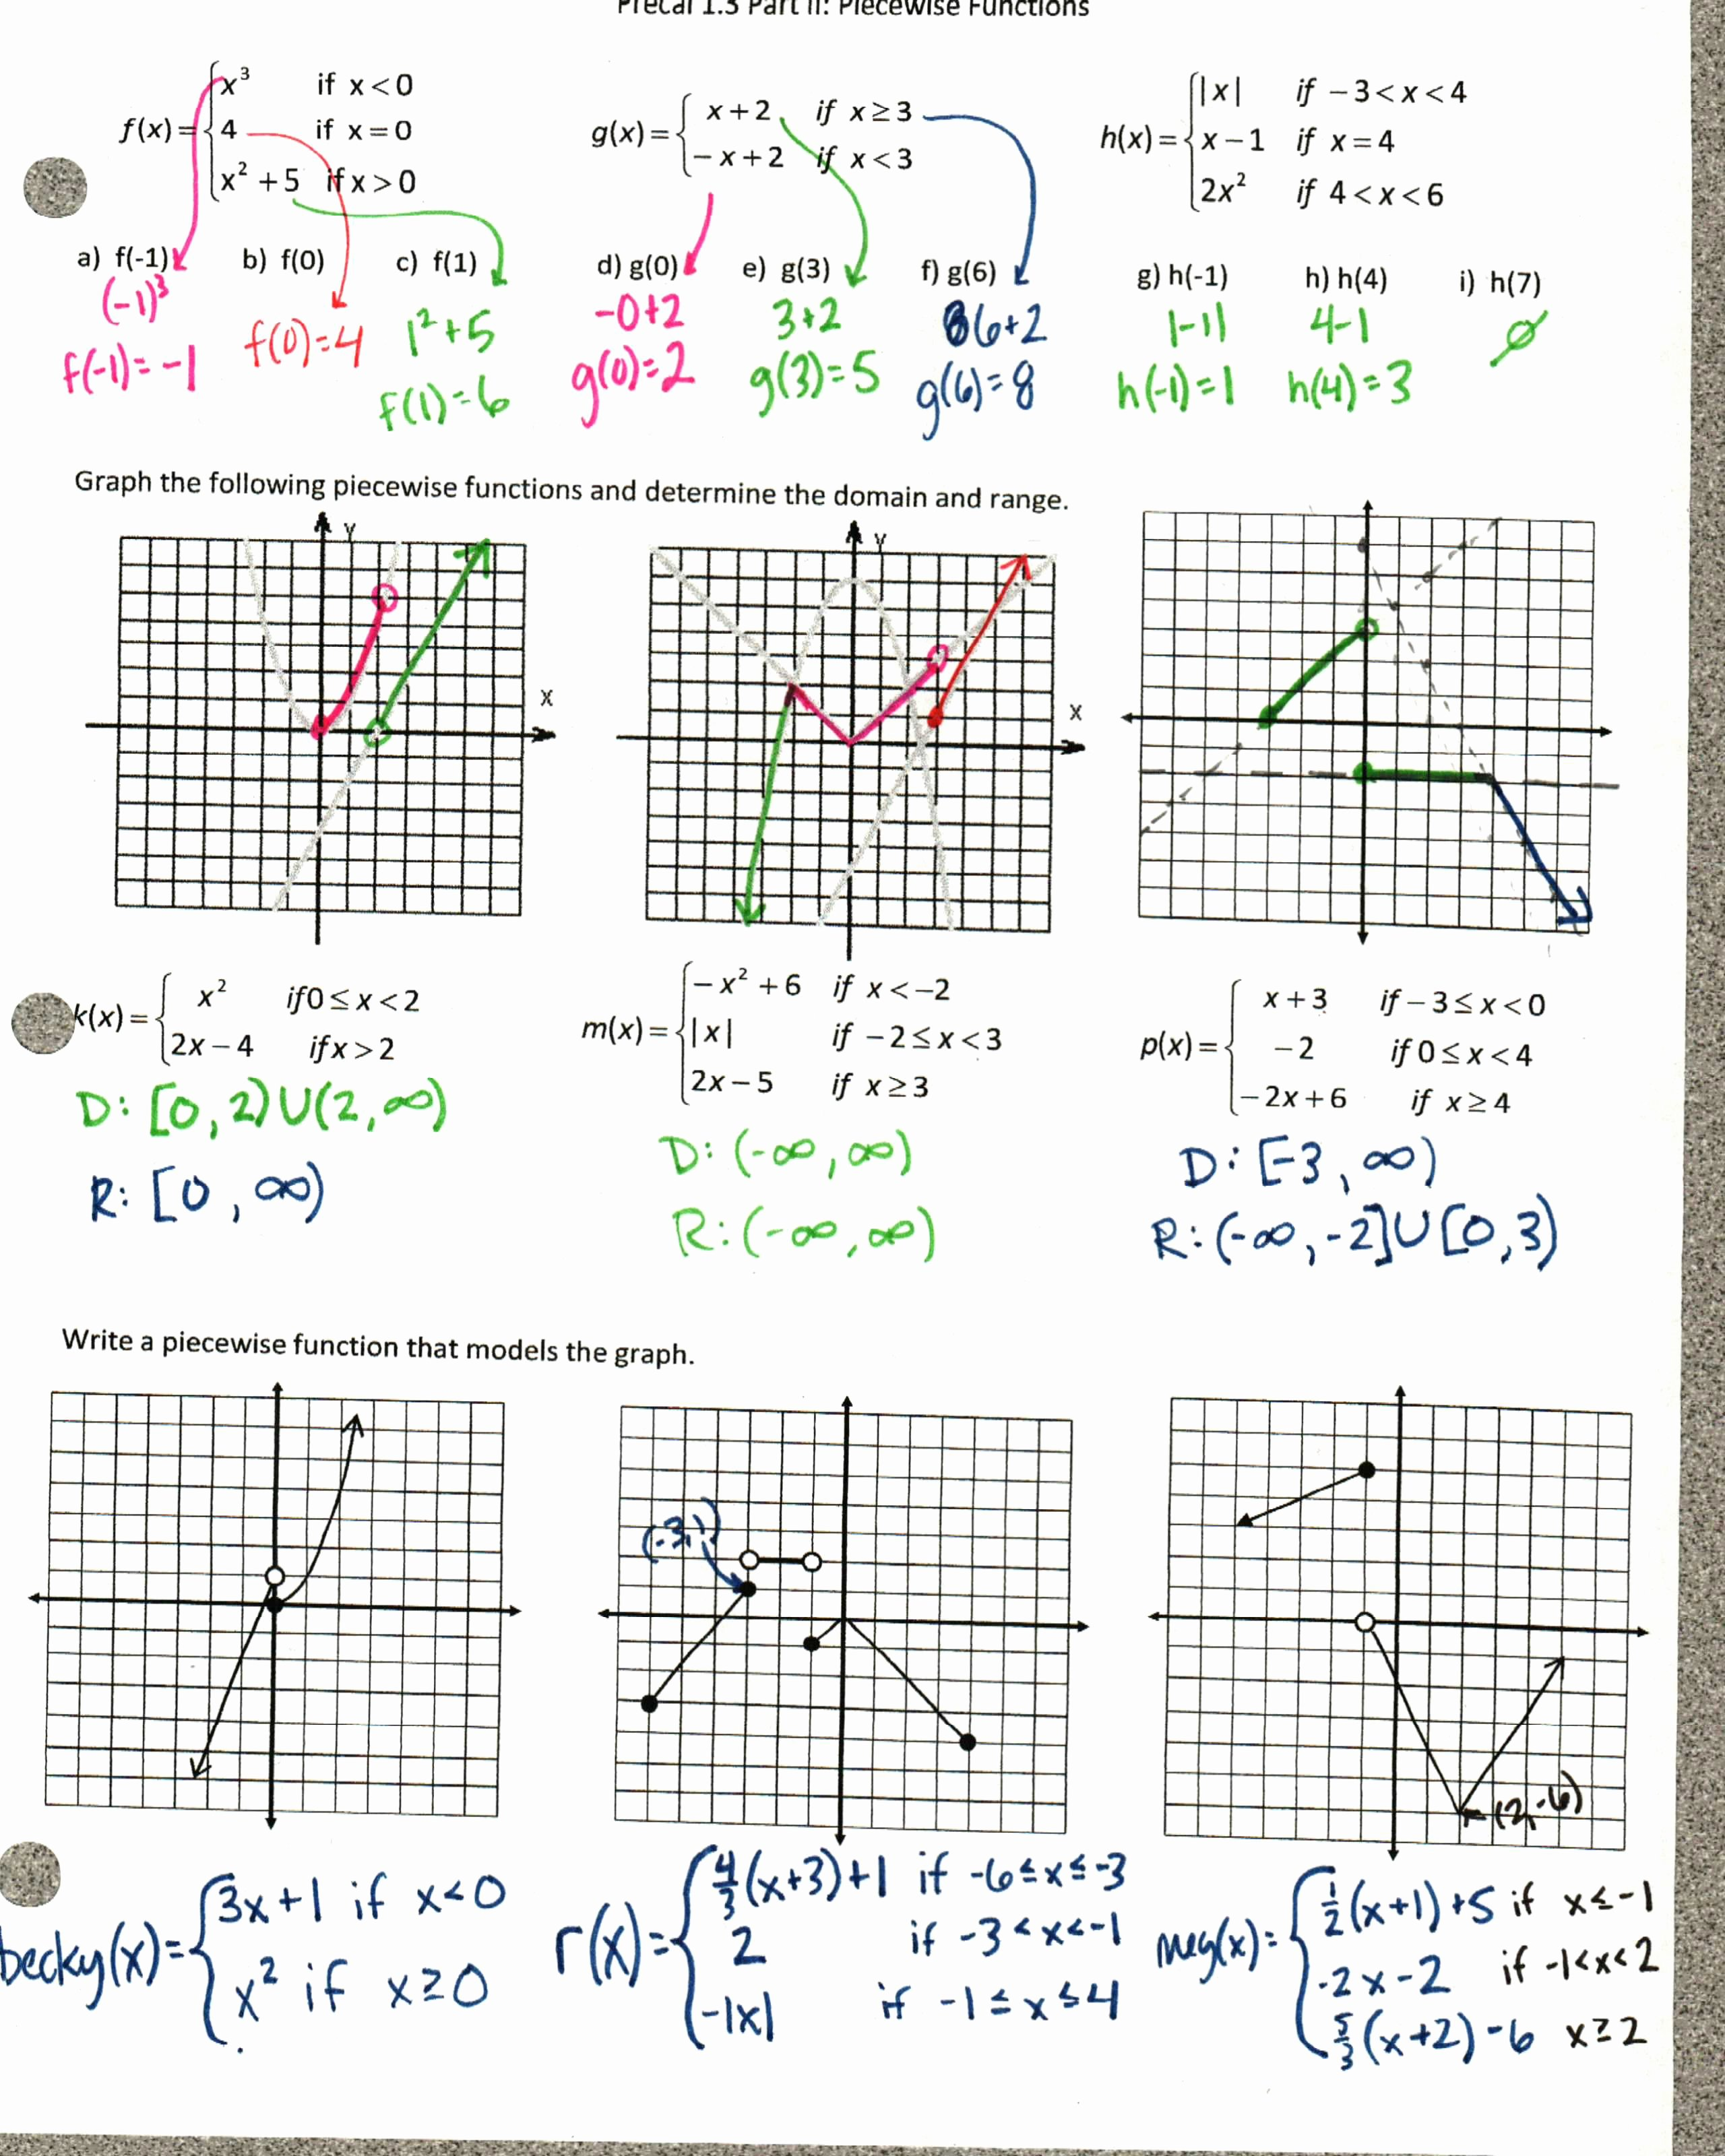 Graphing Piecewise Functions Worksheet Lovely Functions – Insert Clever Math Pun Here